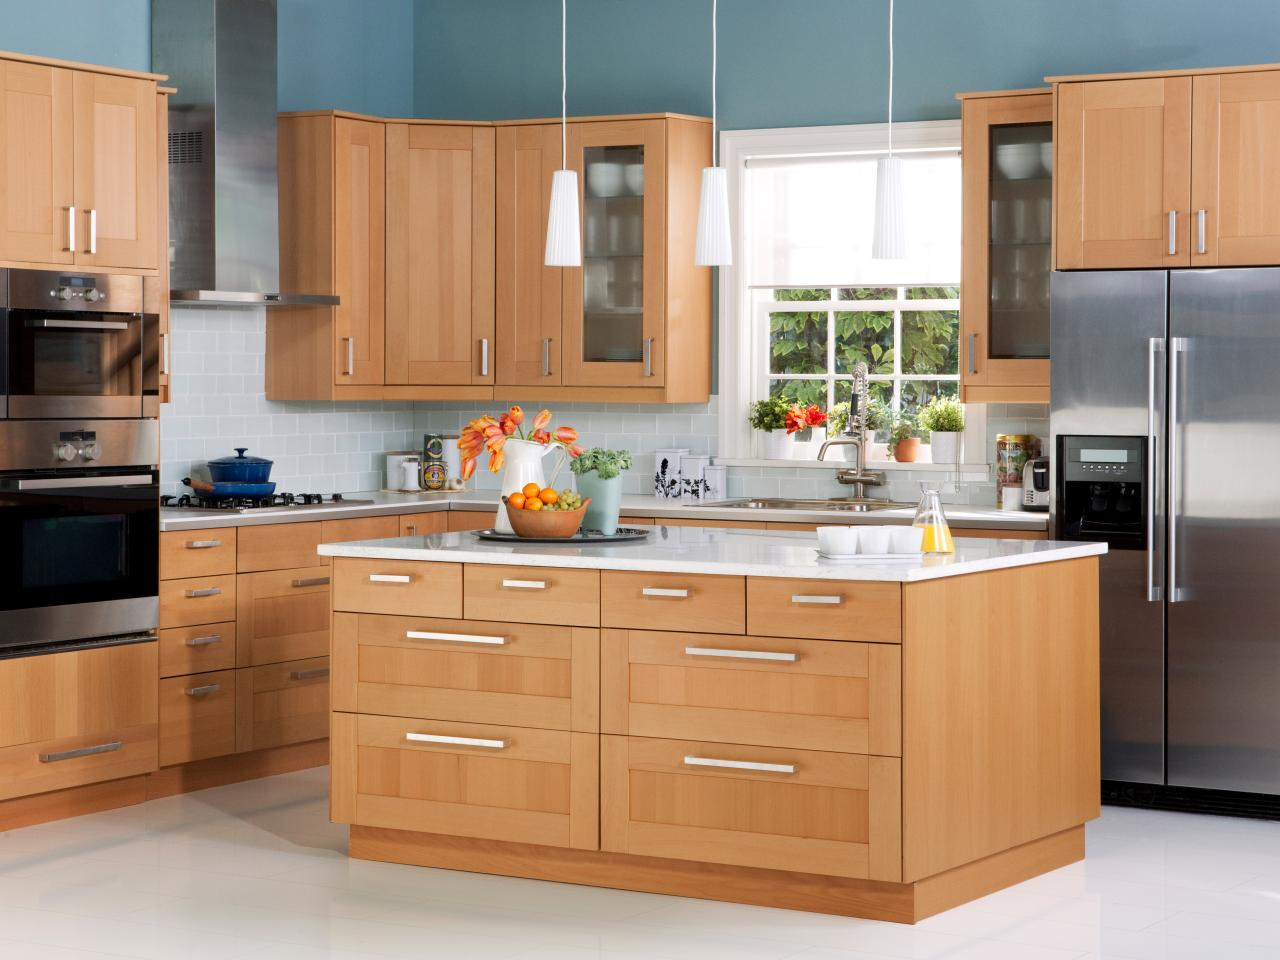 ikea kitchen cabinets ideas photo - 3